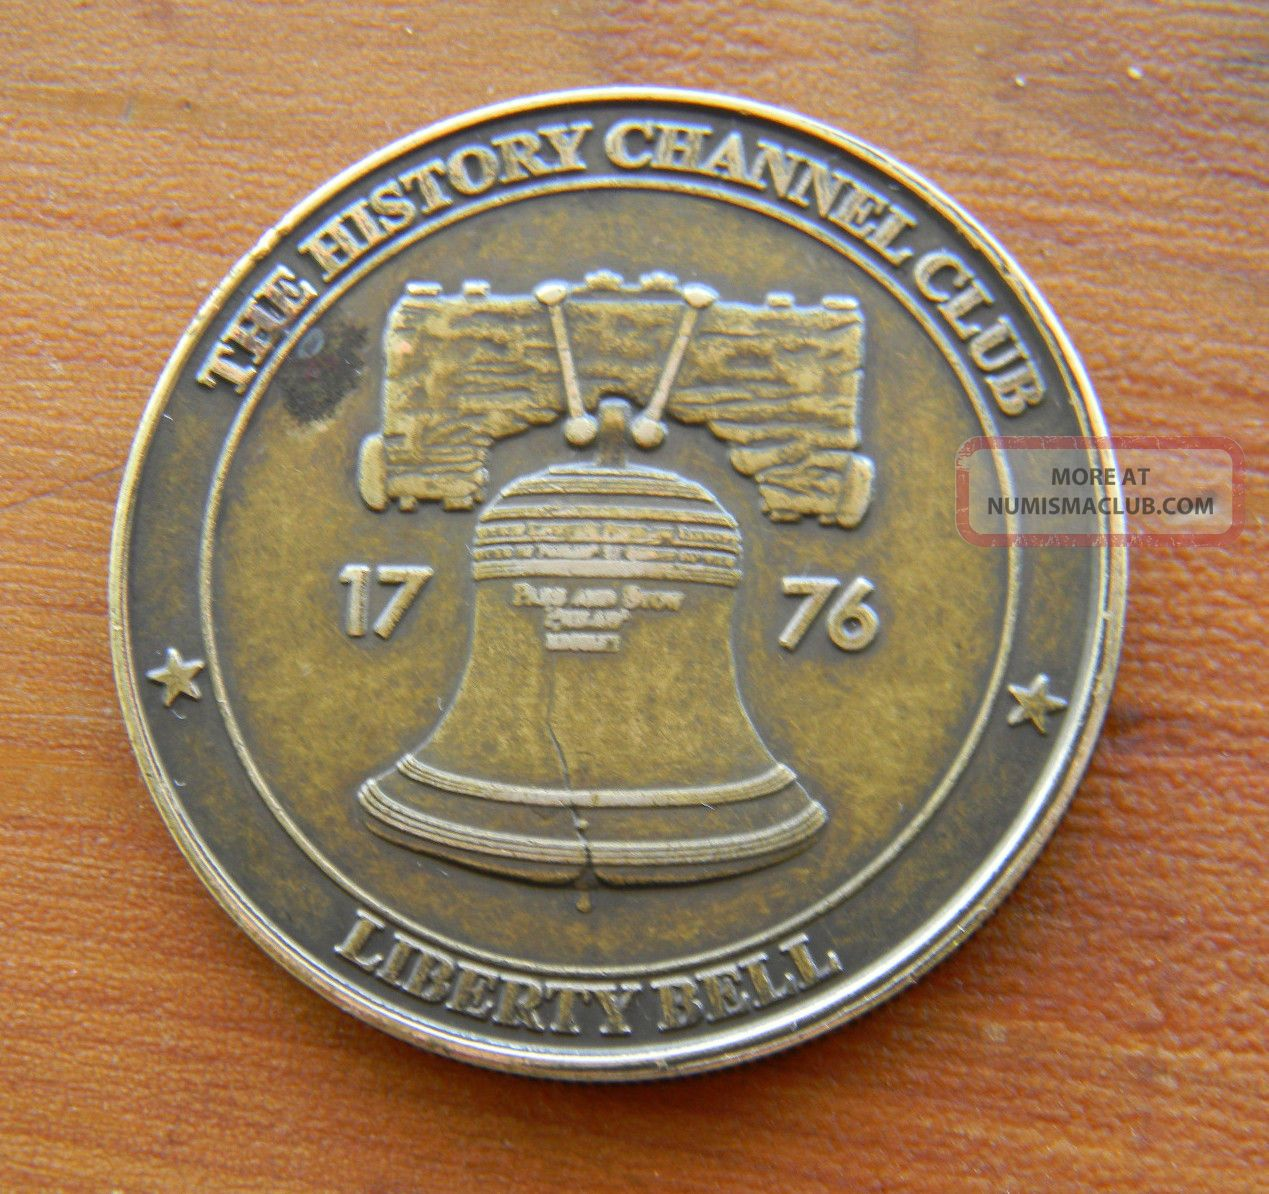 The History Channel Club Liberty Bell 34mm Bronze Token Coin Medallion